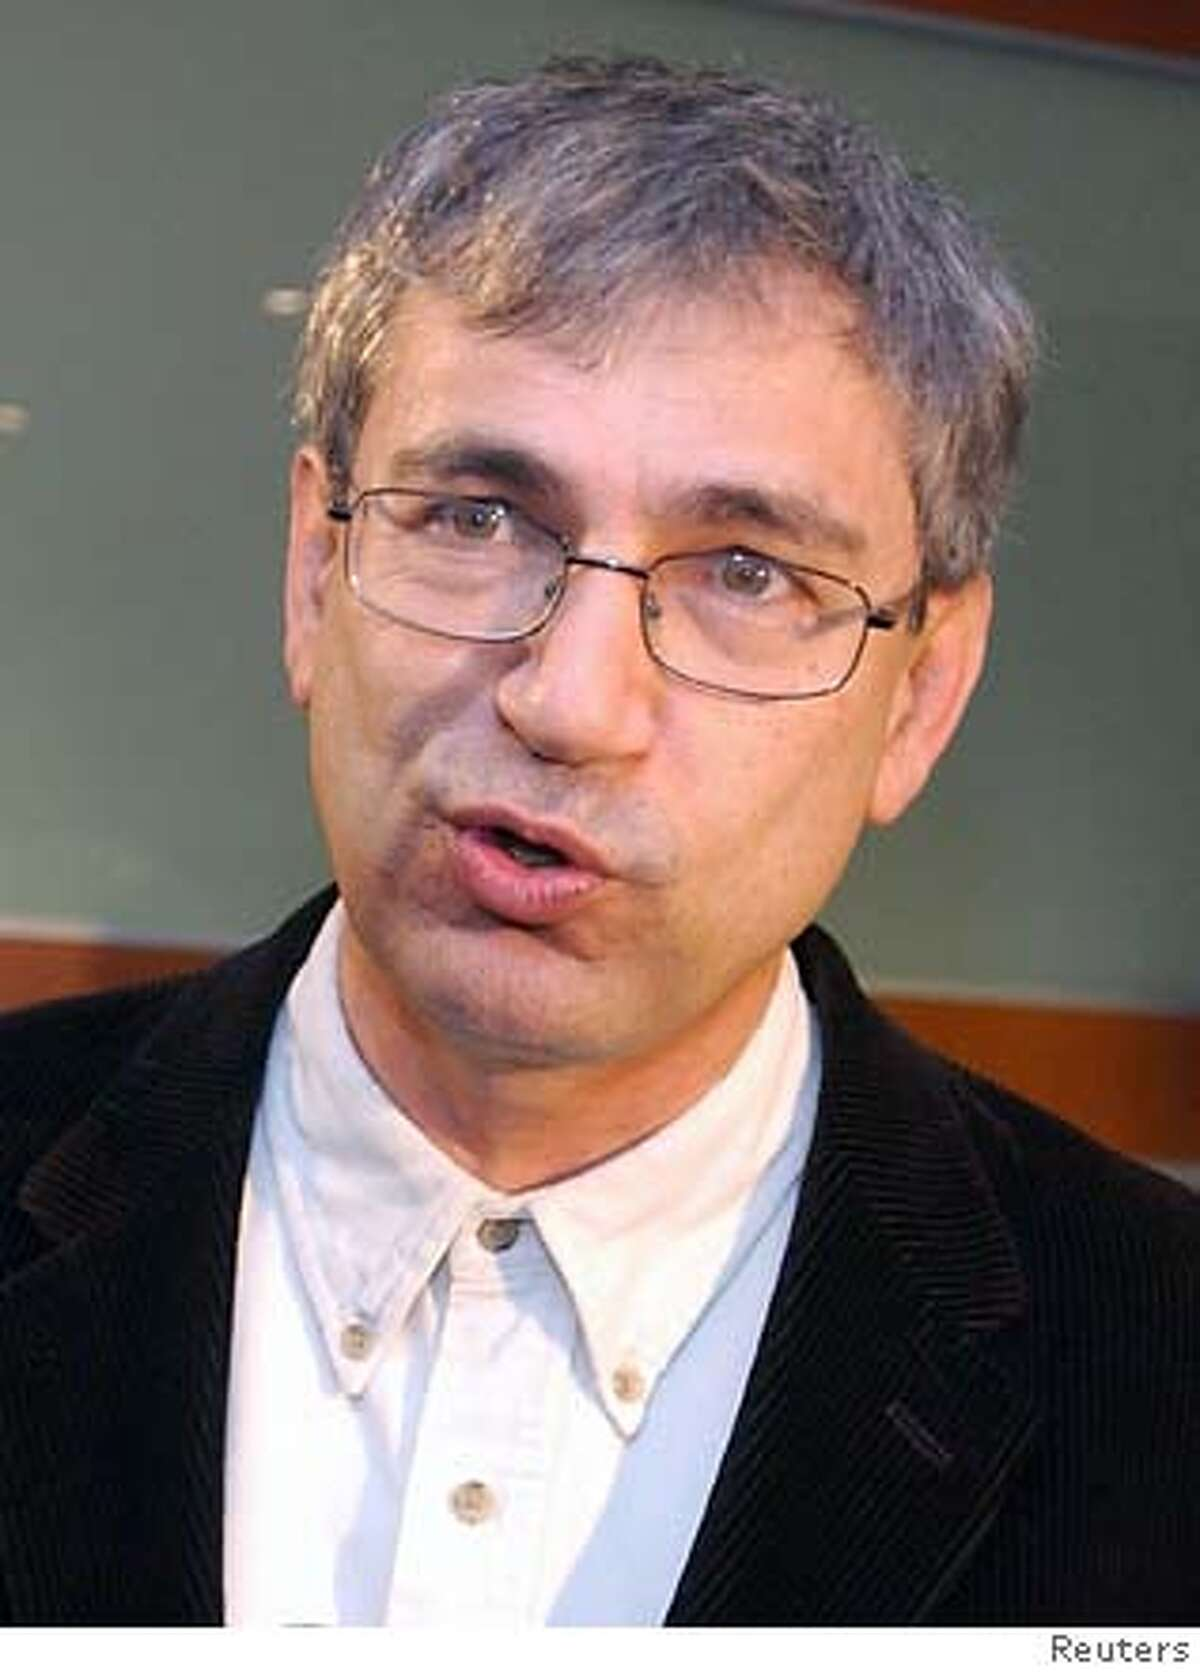 Best-selling Turkish novelist Orhan Pamuk makes a speech during his short appearance at a meeting of the writers who gathered to show their support a day before his trial in Istanbul December 15, 2005. The trial of Pamuk which opens on Friday is a critical test of Turkey's commitment to freedom of expression which risks straining its ties with the European Union. Pamuk faces up to three years in jail if convicted of insulting